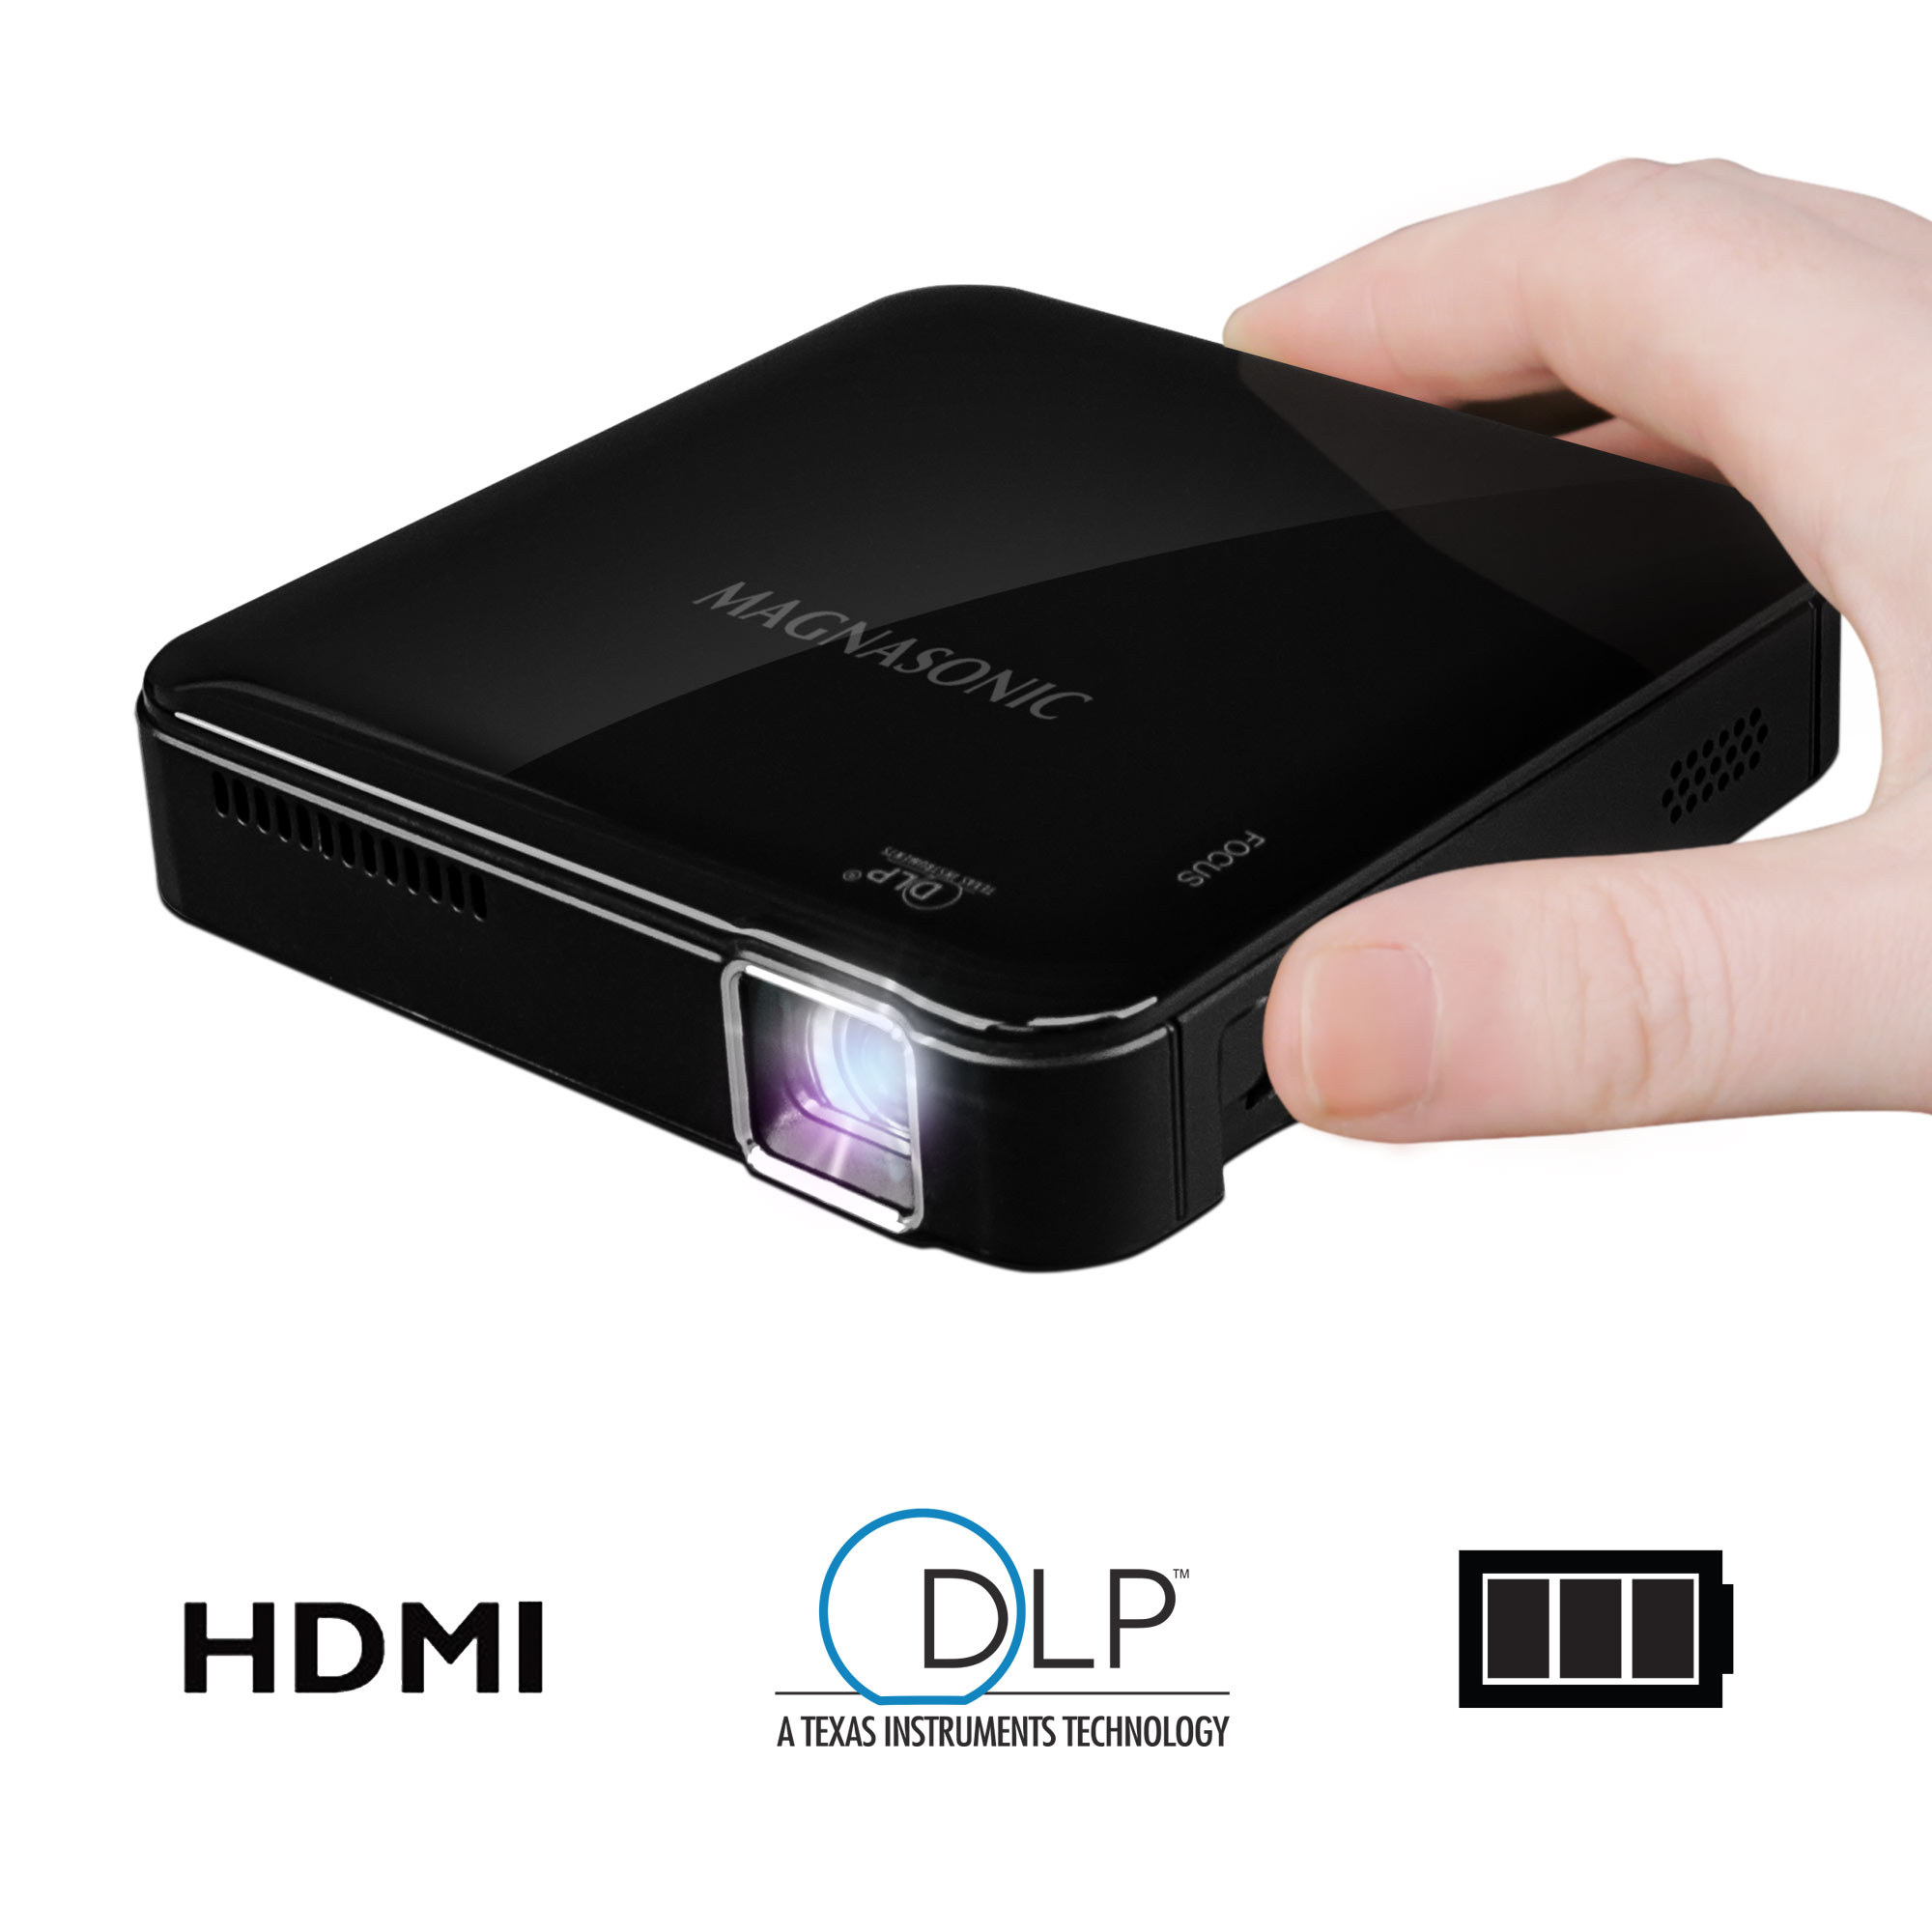 Magnasonic Mini Portable Pico Video Projector with HDMI, Battery, DLP, Vibrant 50 Lumen Brightness (PP71)